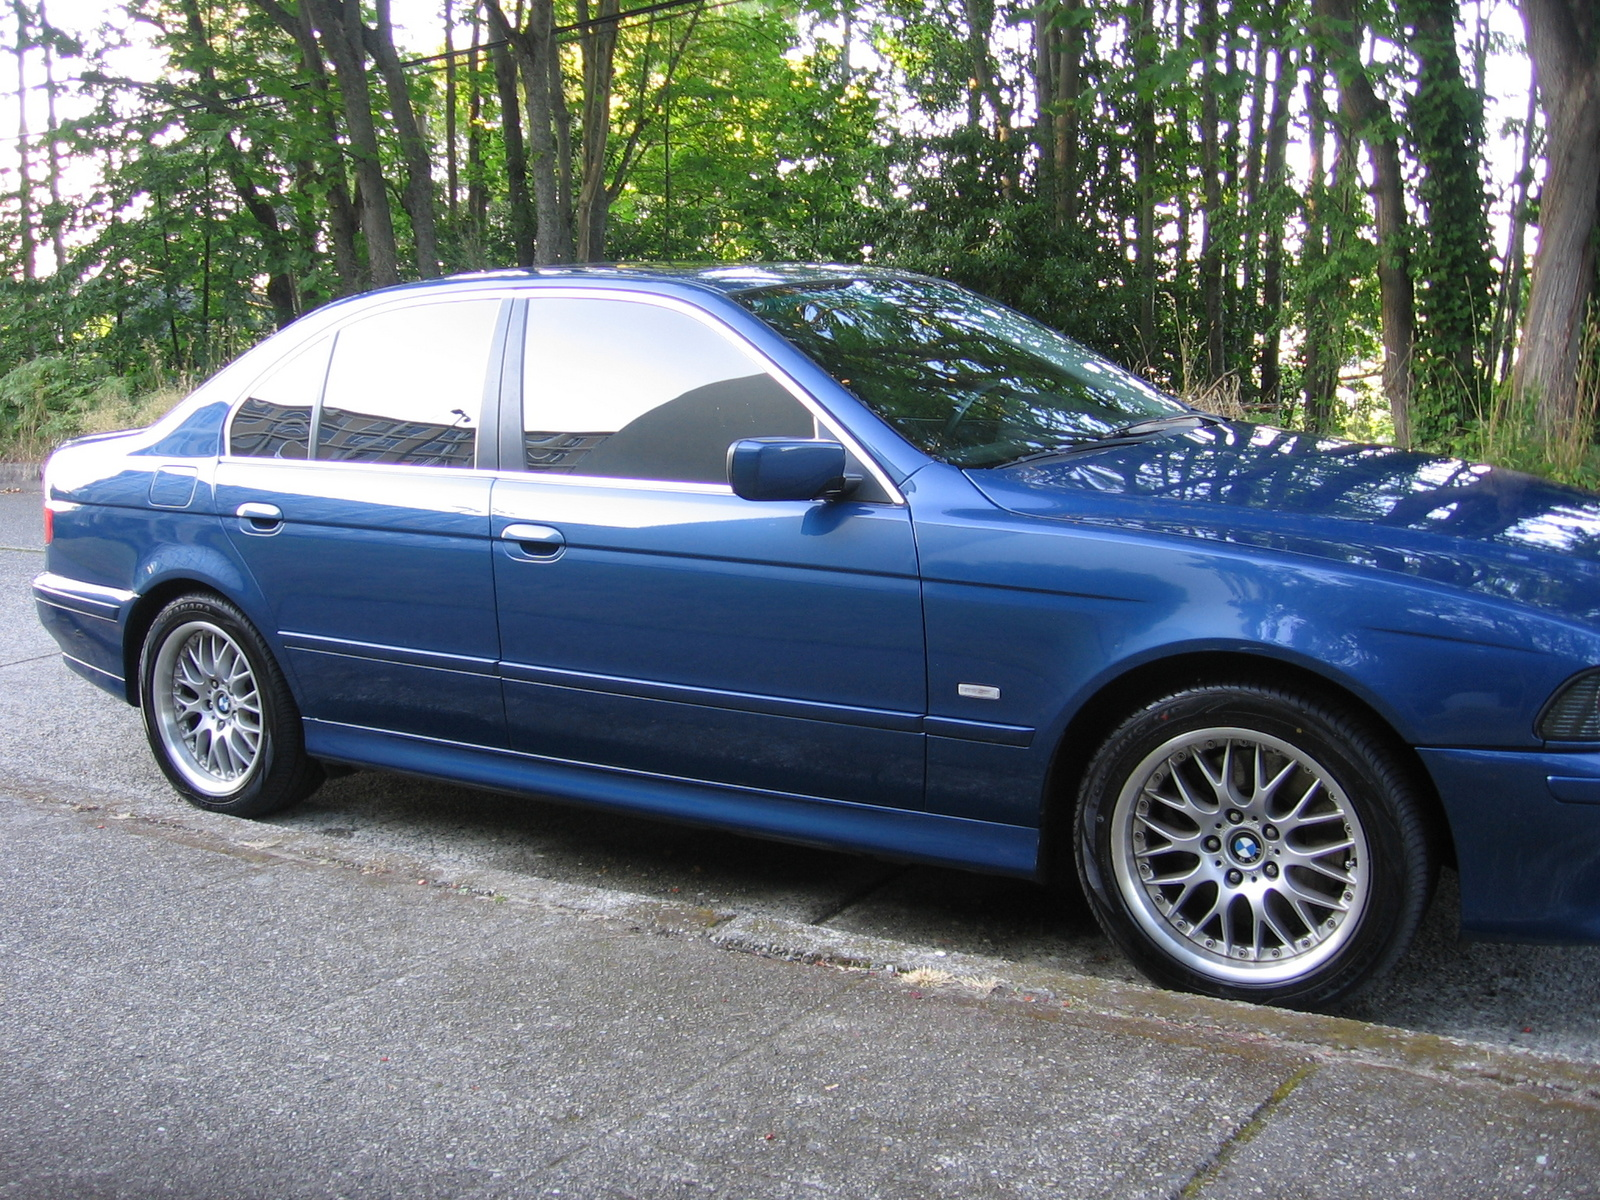 BMW 5 series 530xd 2003 photo - 10